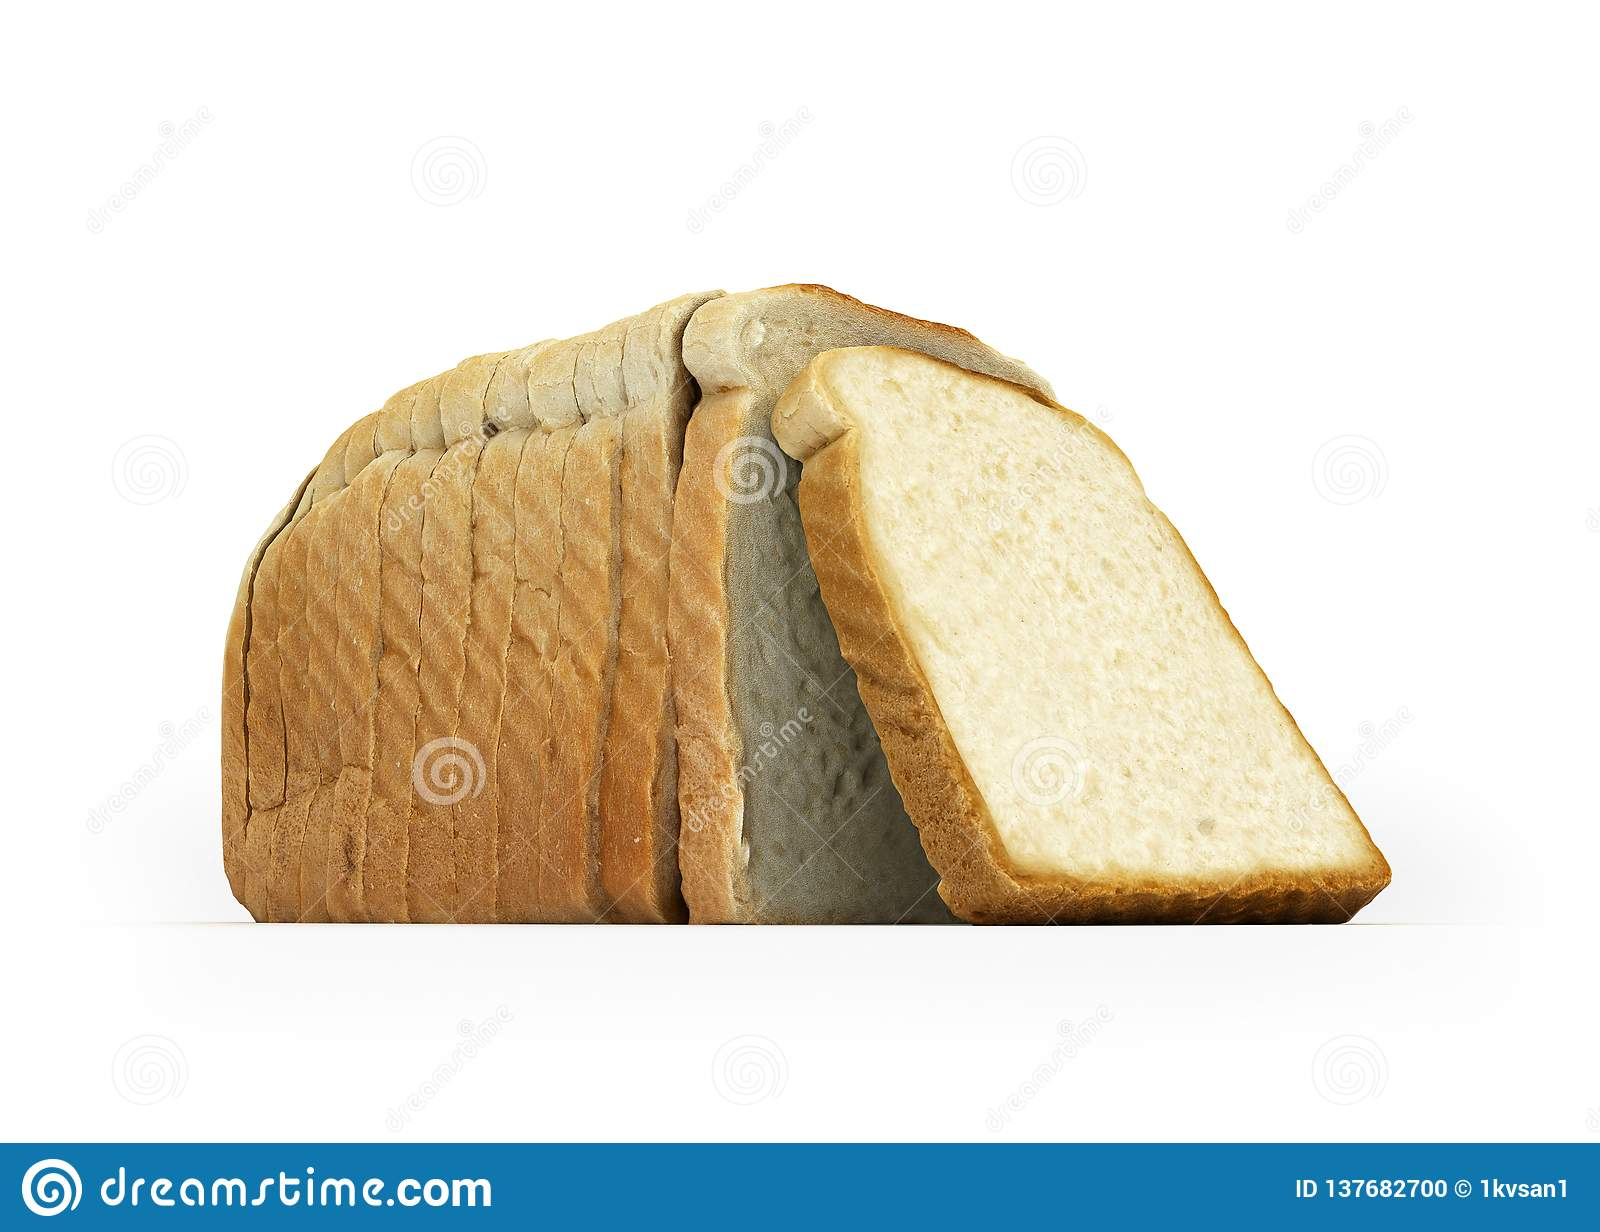 Sliced bread isolated on white background 3d